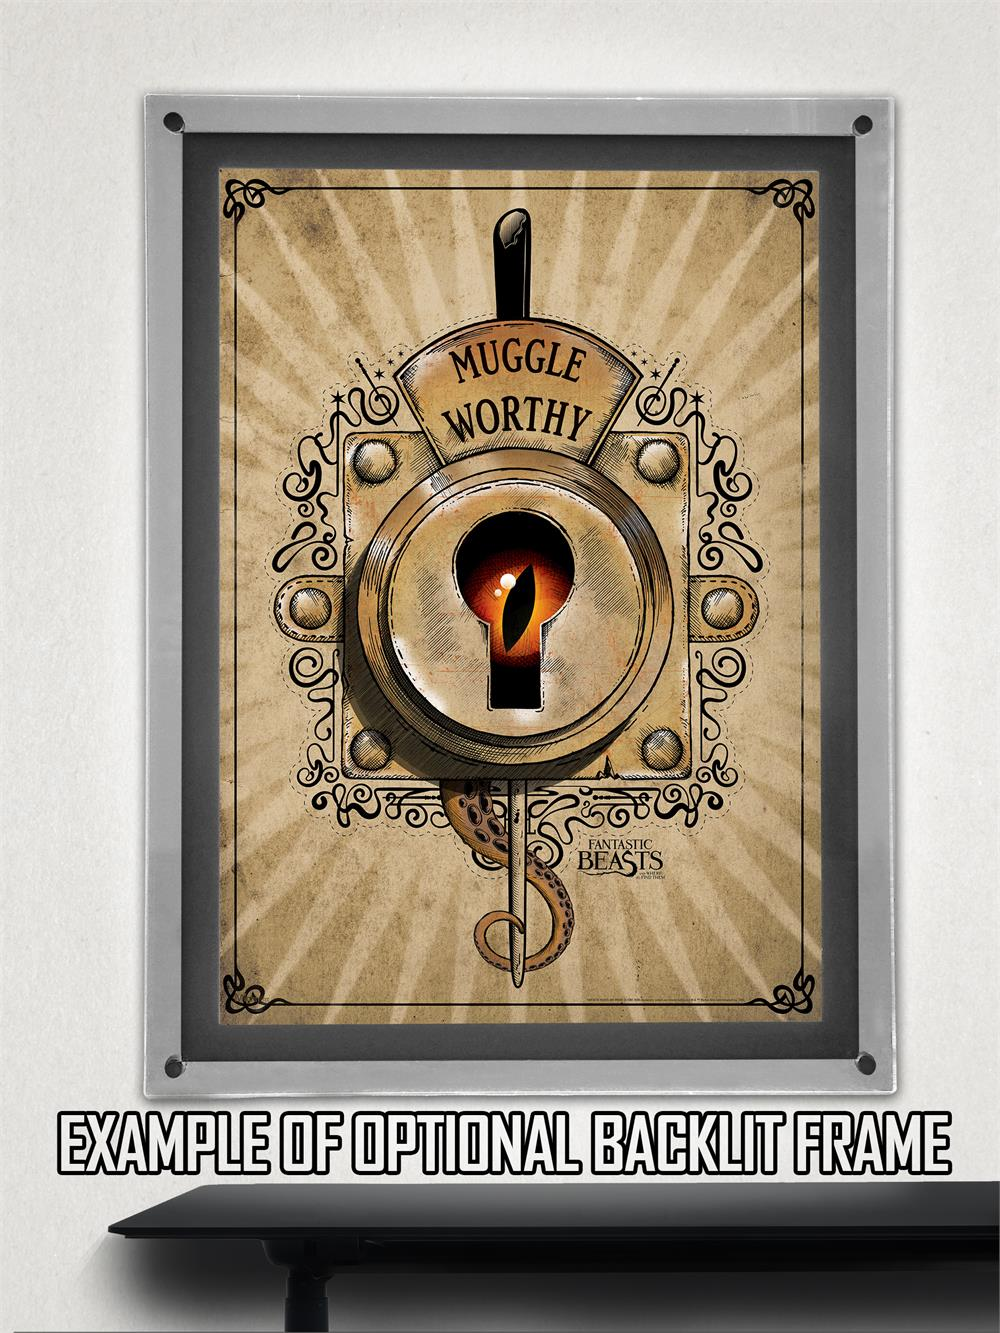 Fantastic Beasts Muggle Worthy Mightyprint Wall Art